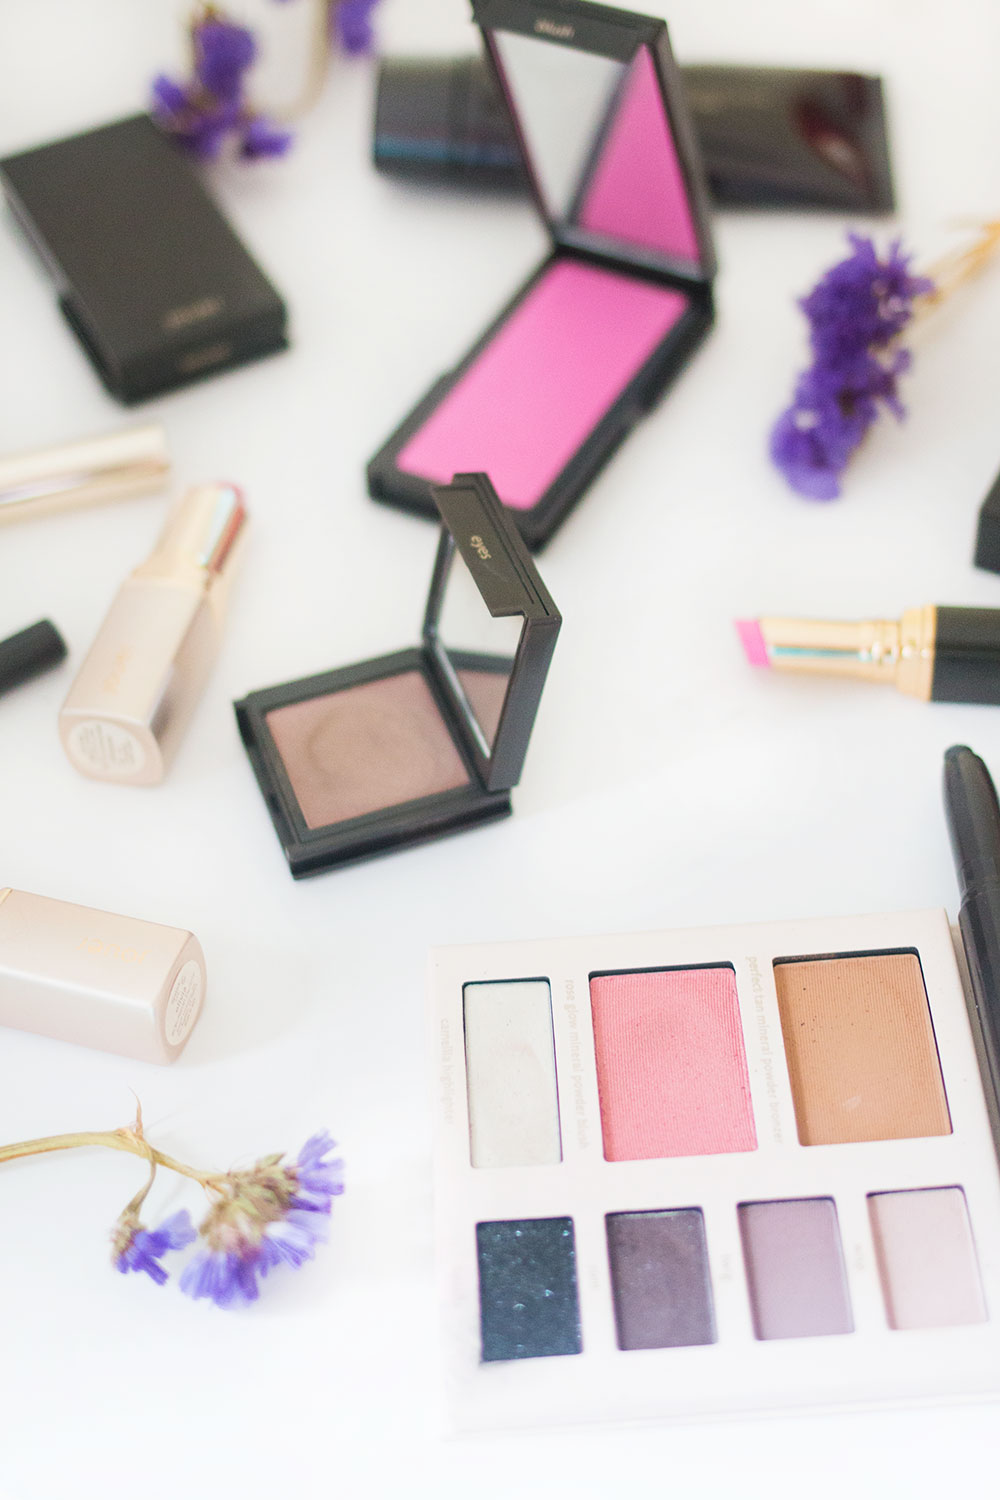 Jouer Cosmetics Review // Hello Rigby Seattle Beauty Blog